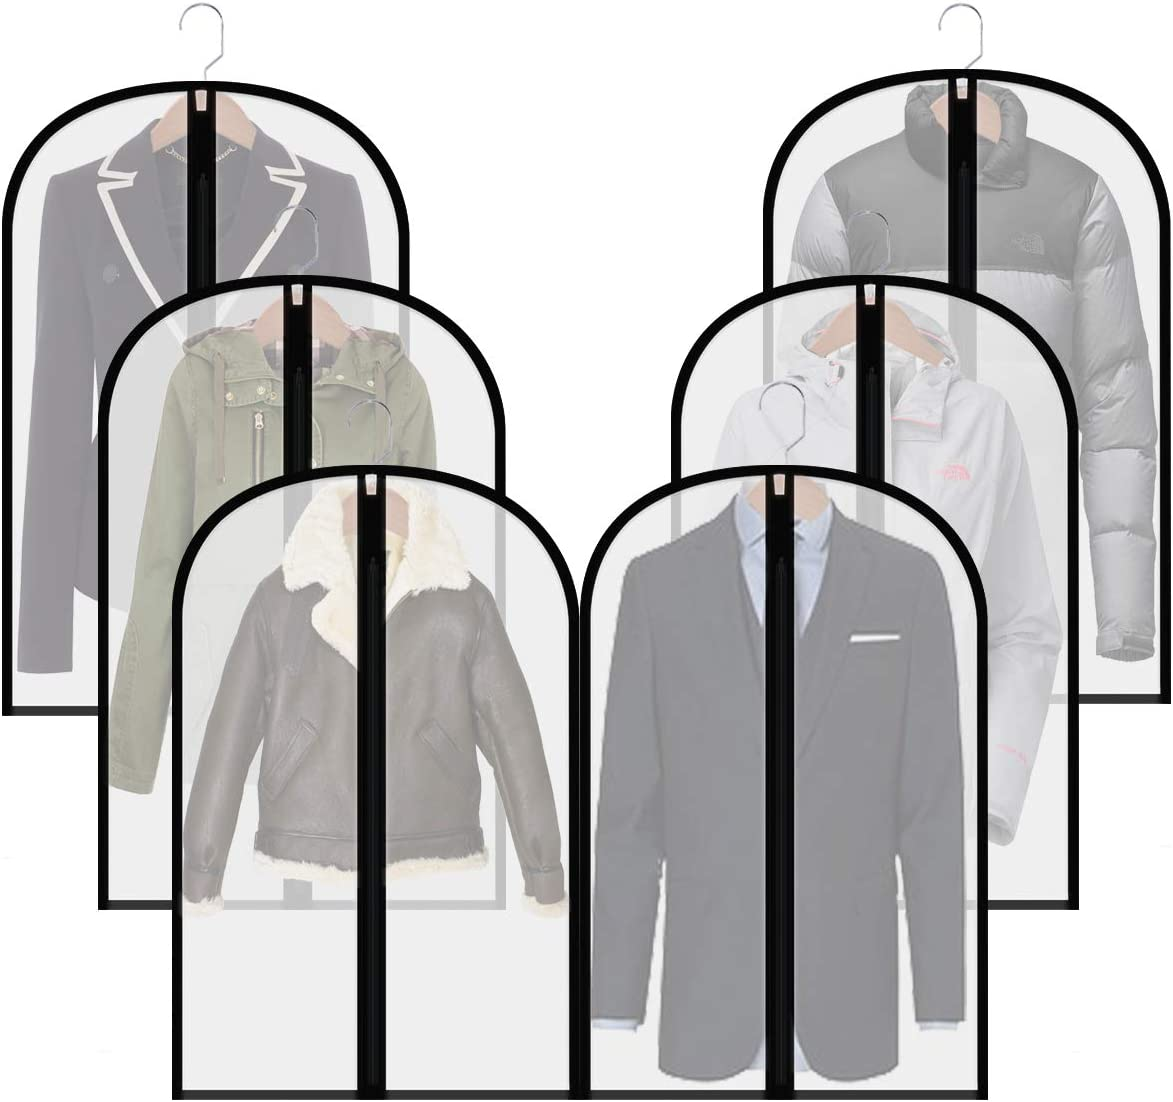 homeminda Moth Proof Garment Bags 40in Clear Suit Dust Cover Hanging Lightweight Breathable with Study Full Zipper for Storage Jacket and Travel Pack of 6